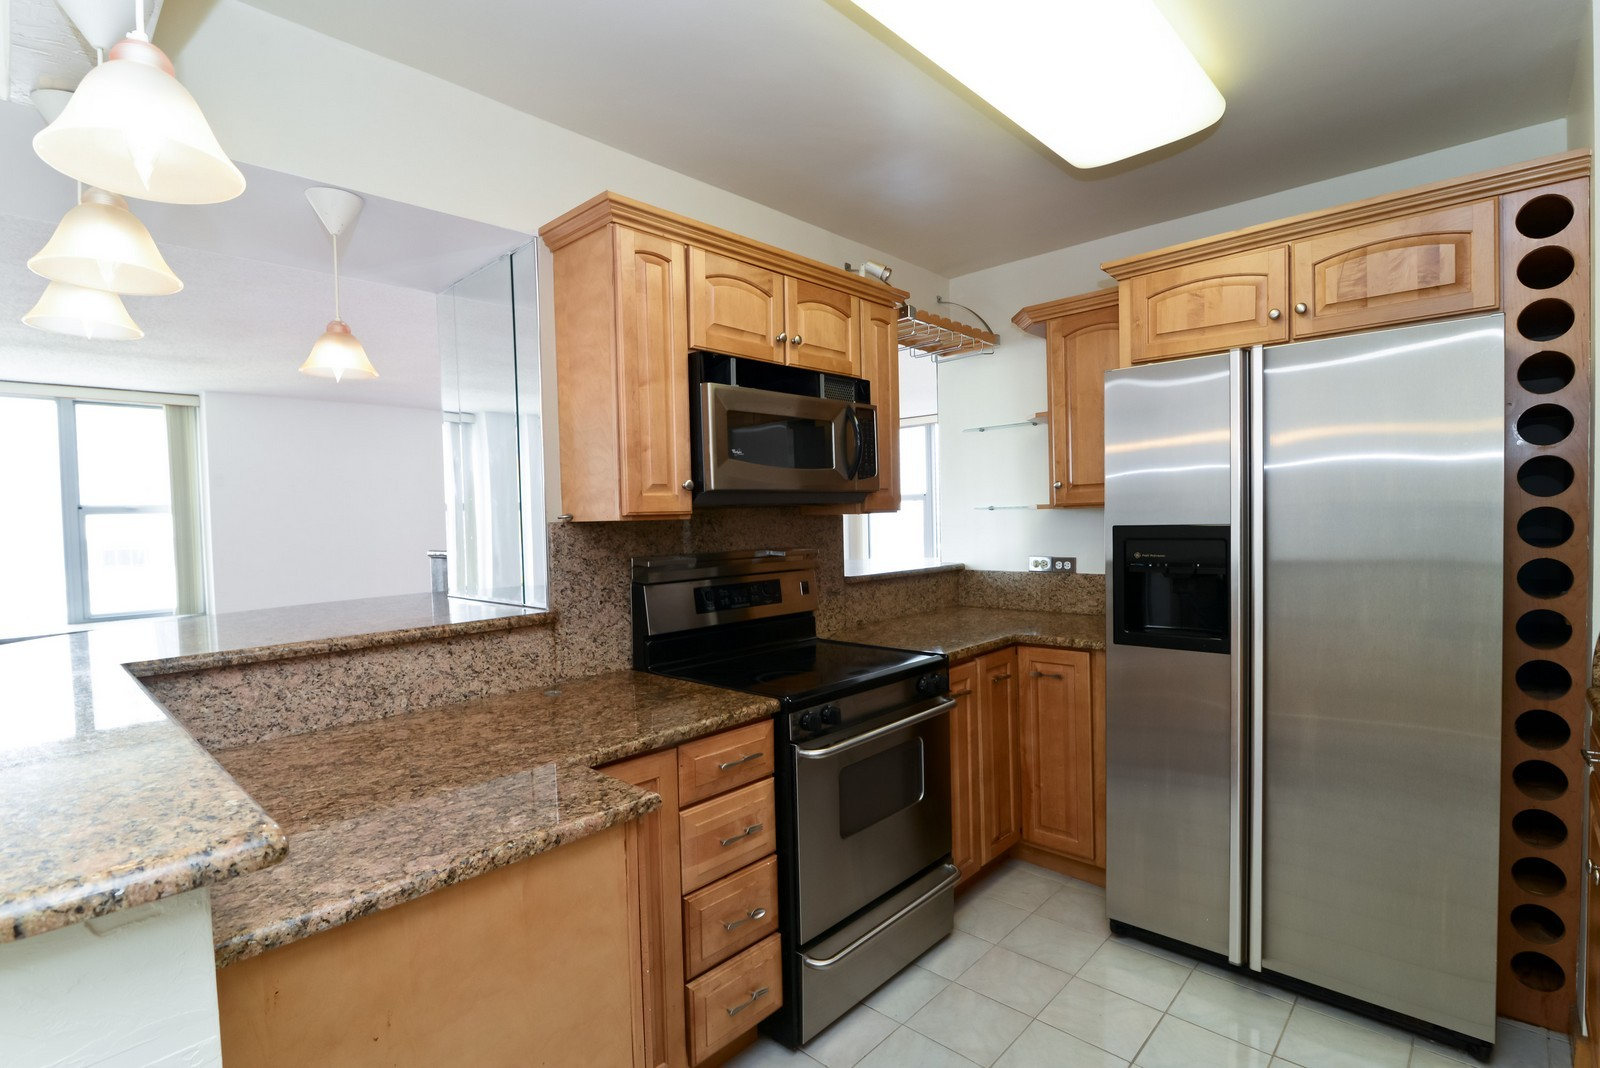 Real Estate Photography - 777 N Michigan Ave, Unit 2200, Chicago, IL, 60611 - Kitchen